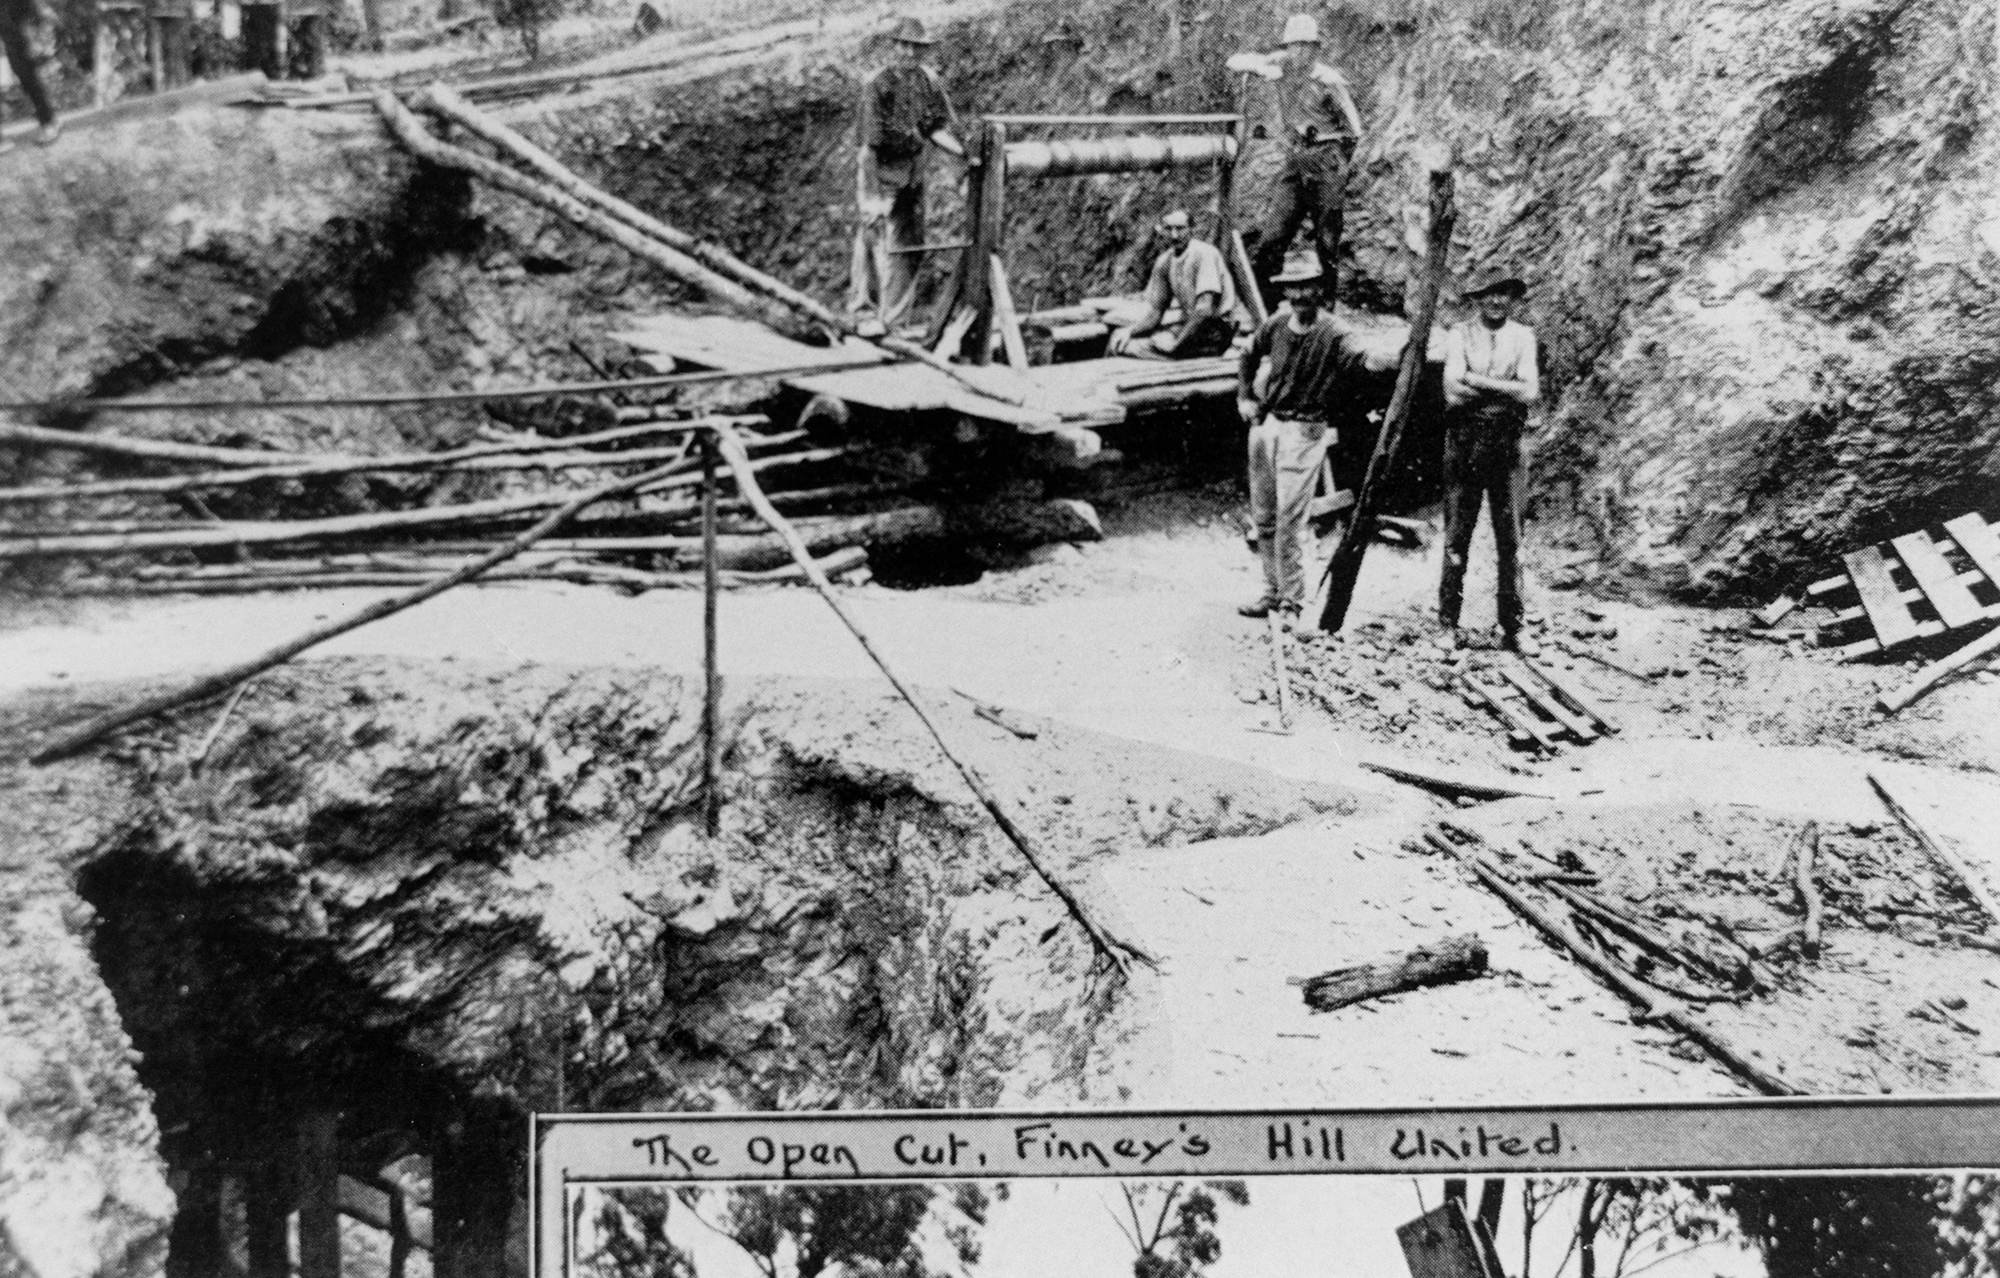 Photo courtesy of the SLQ: Finney's Hill United Silver Mine at Indooroopilly, Brisbane, 1921 Negative no.152987.